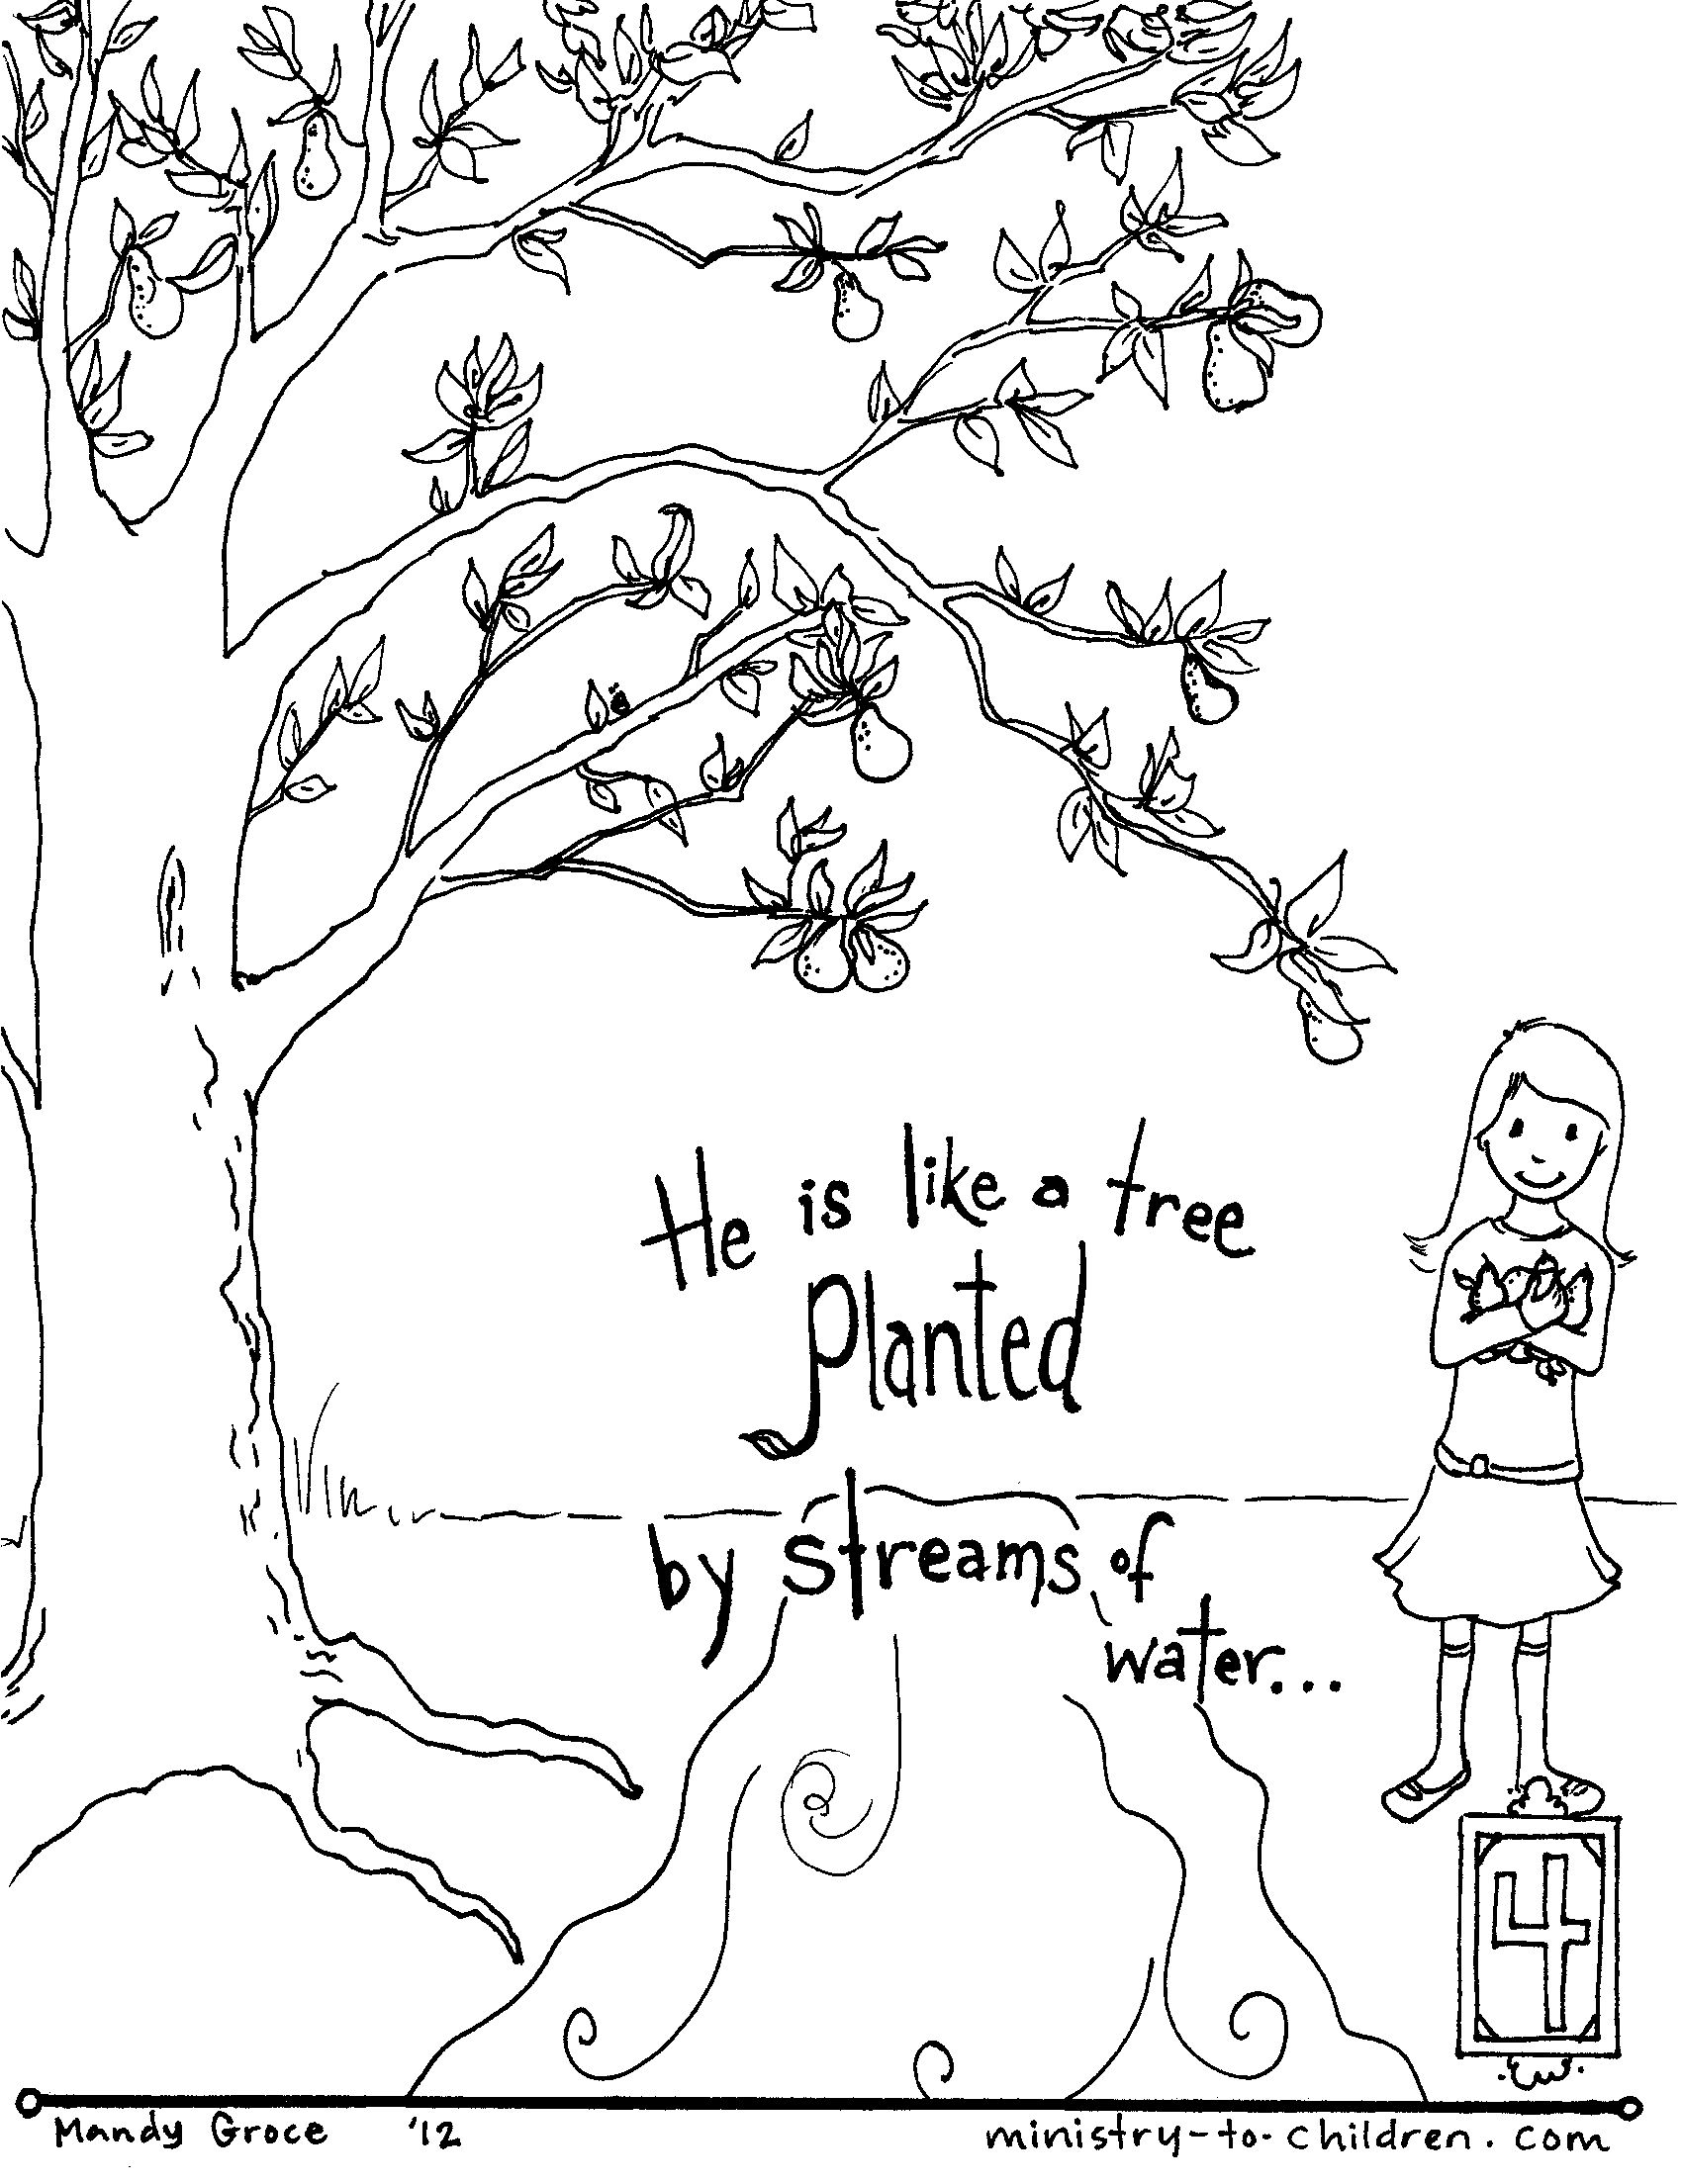 kjv bible verse coloring pages - photo#33